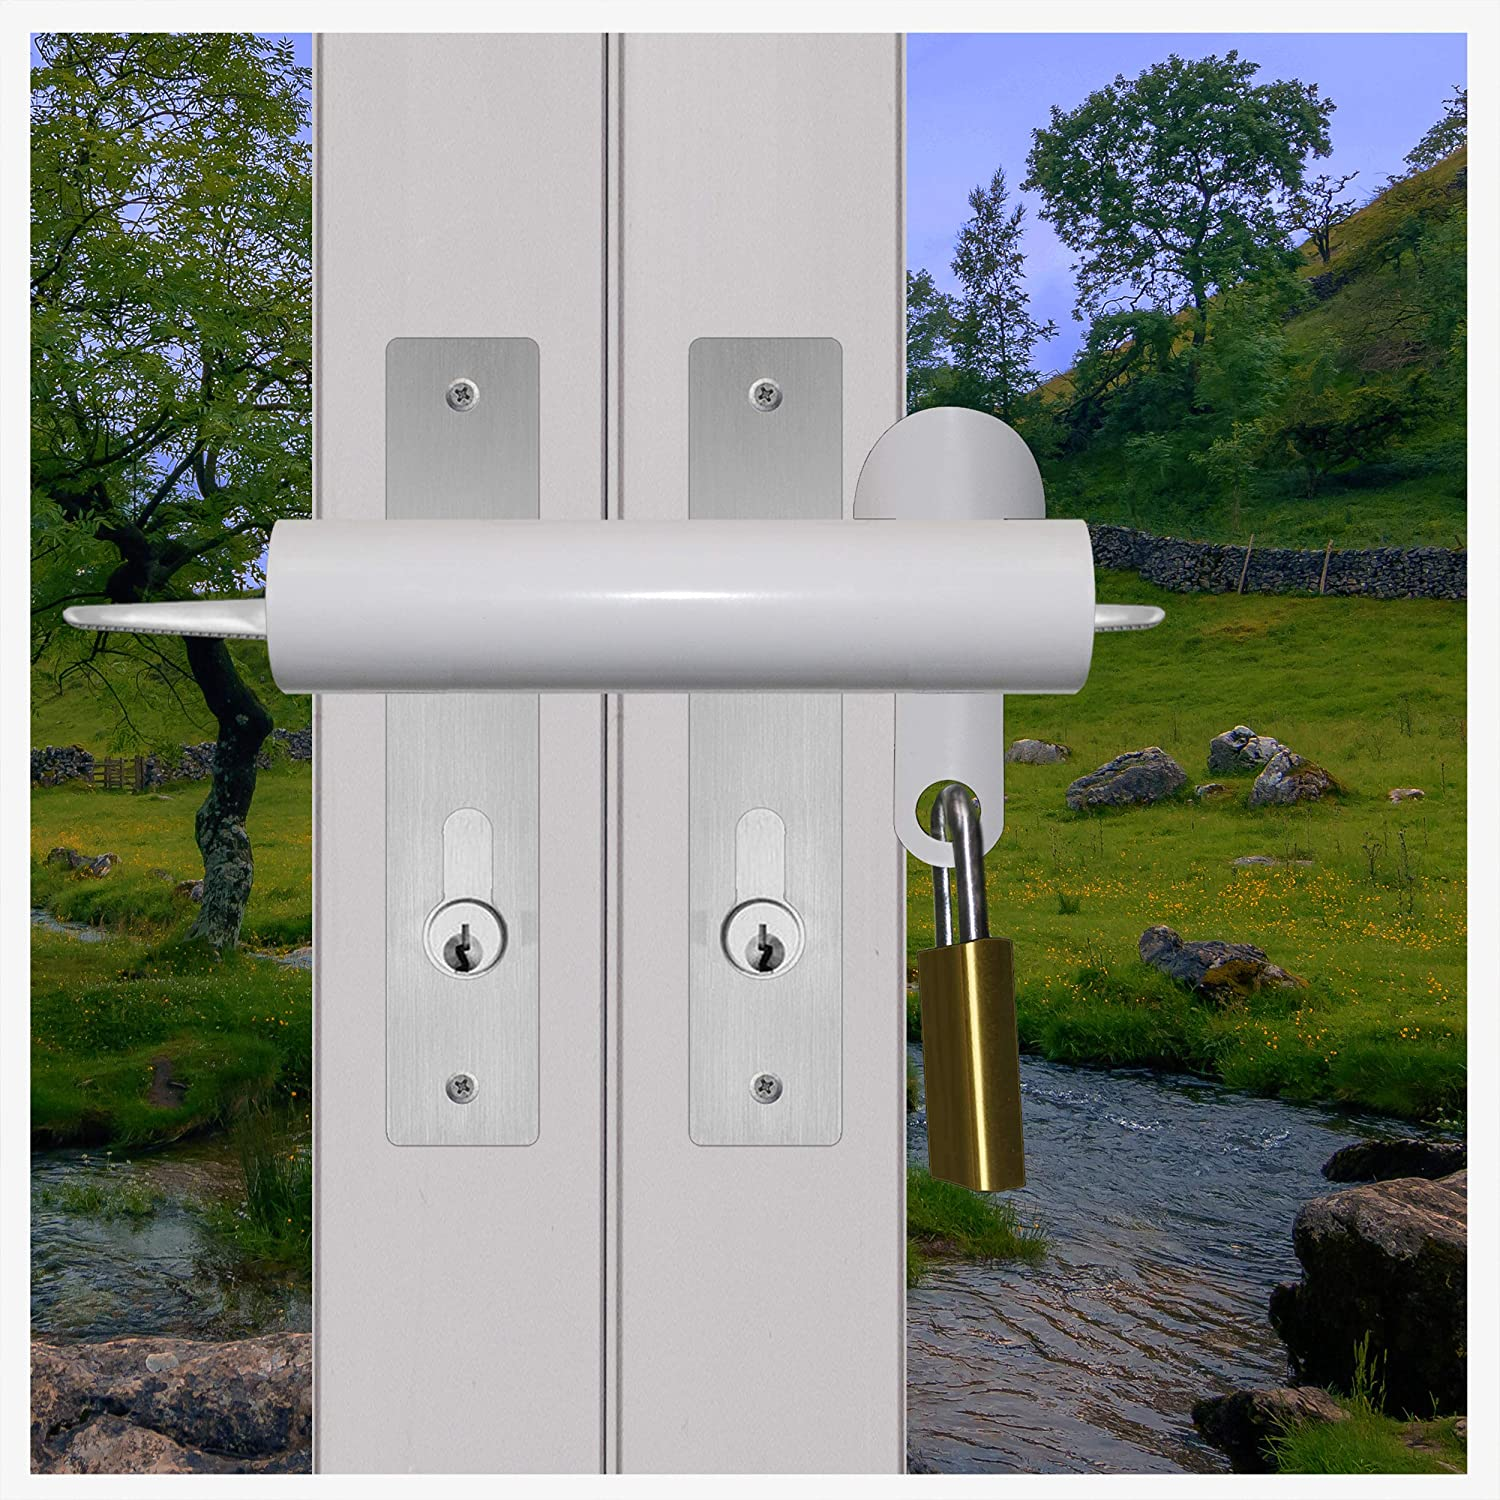 Patio French Door Lock 'SHORT DELUXE' High Security Deadlock Sliding Fix Bar Seen from Outside Tough and Easy EASYLIFETOOLS